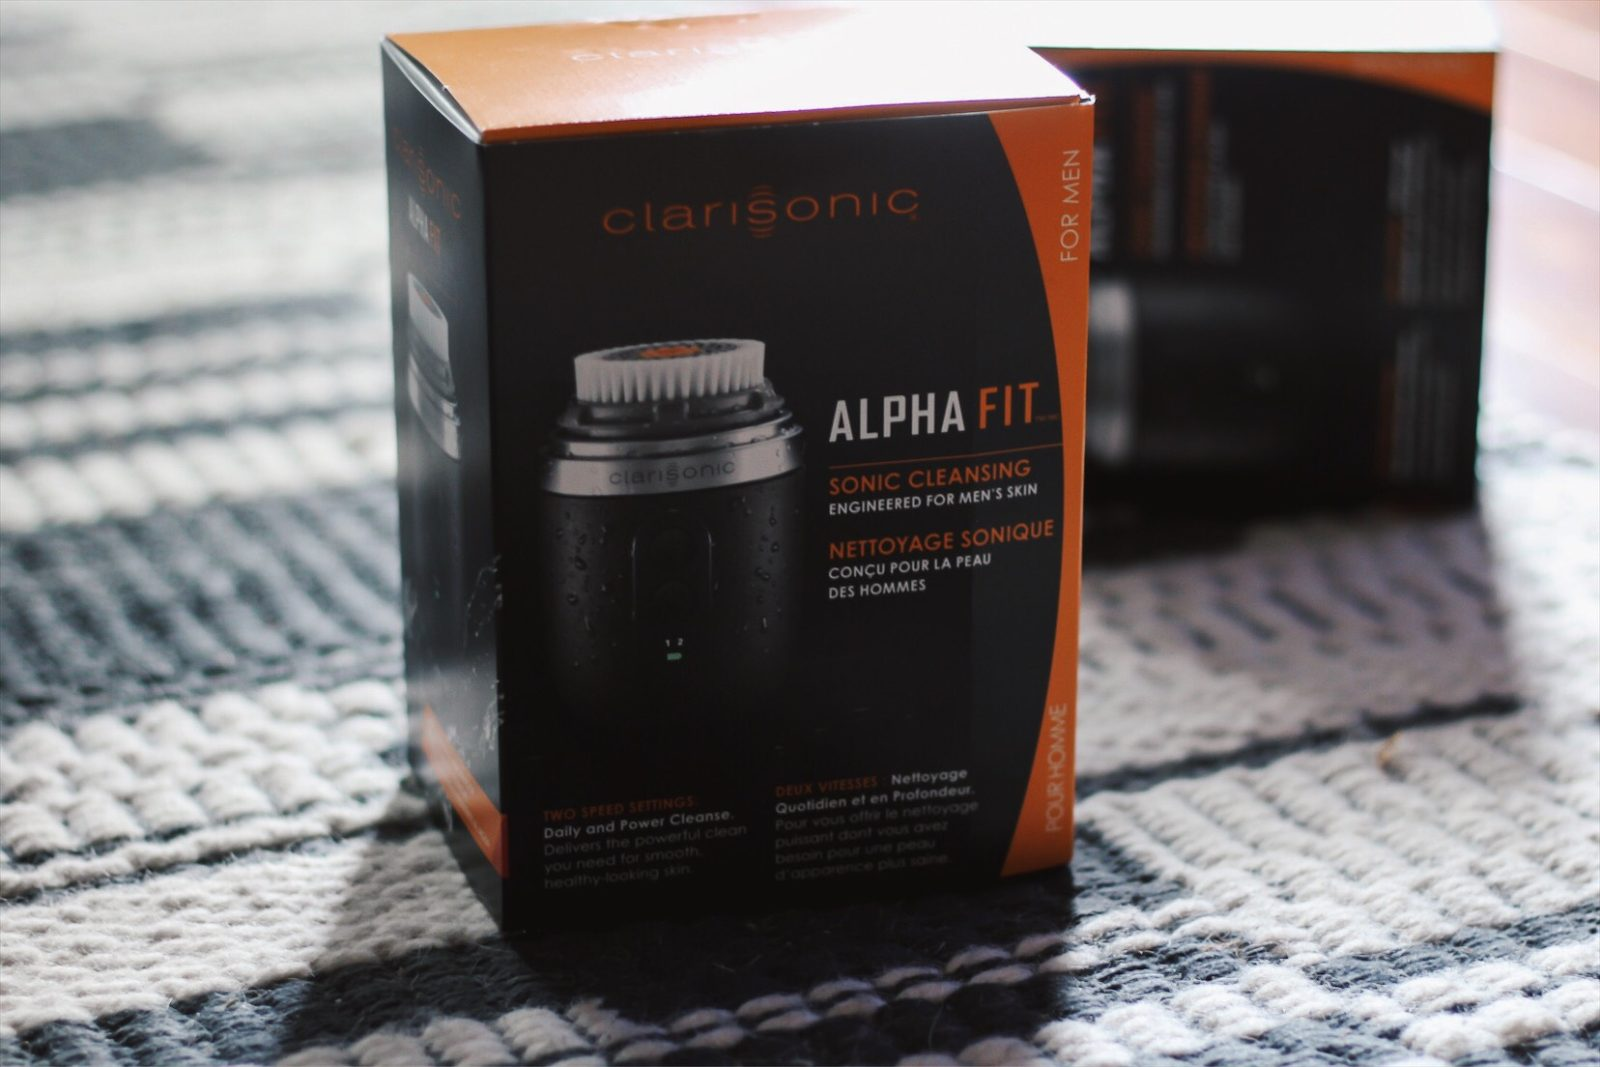 OUR THOUGHTS ON THE CLARISONIC ALPHA FIT